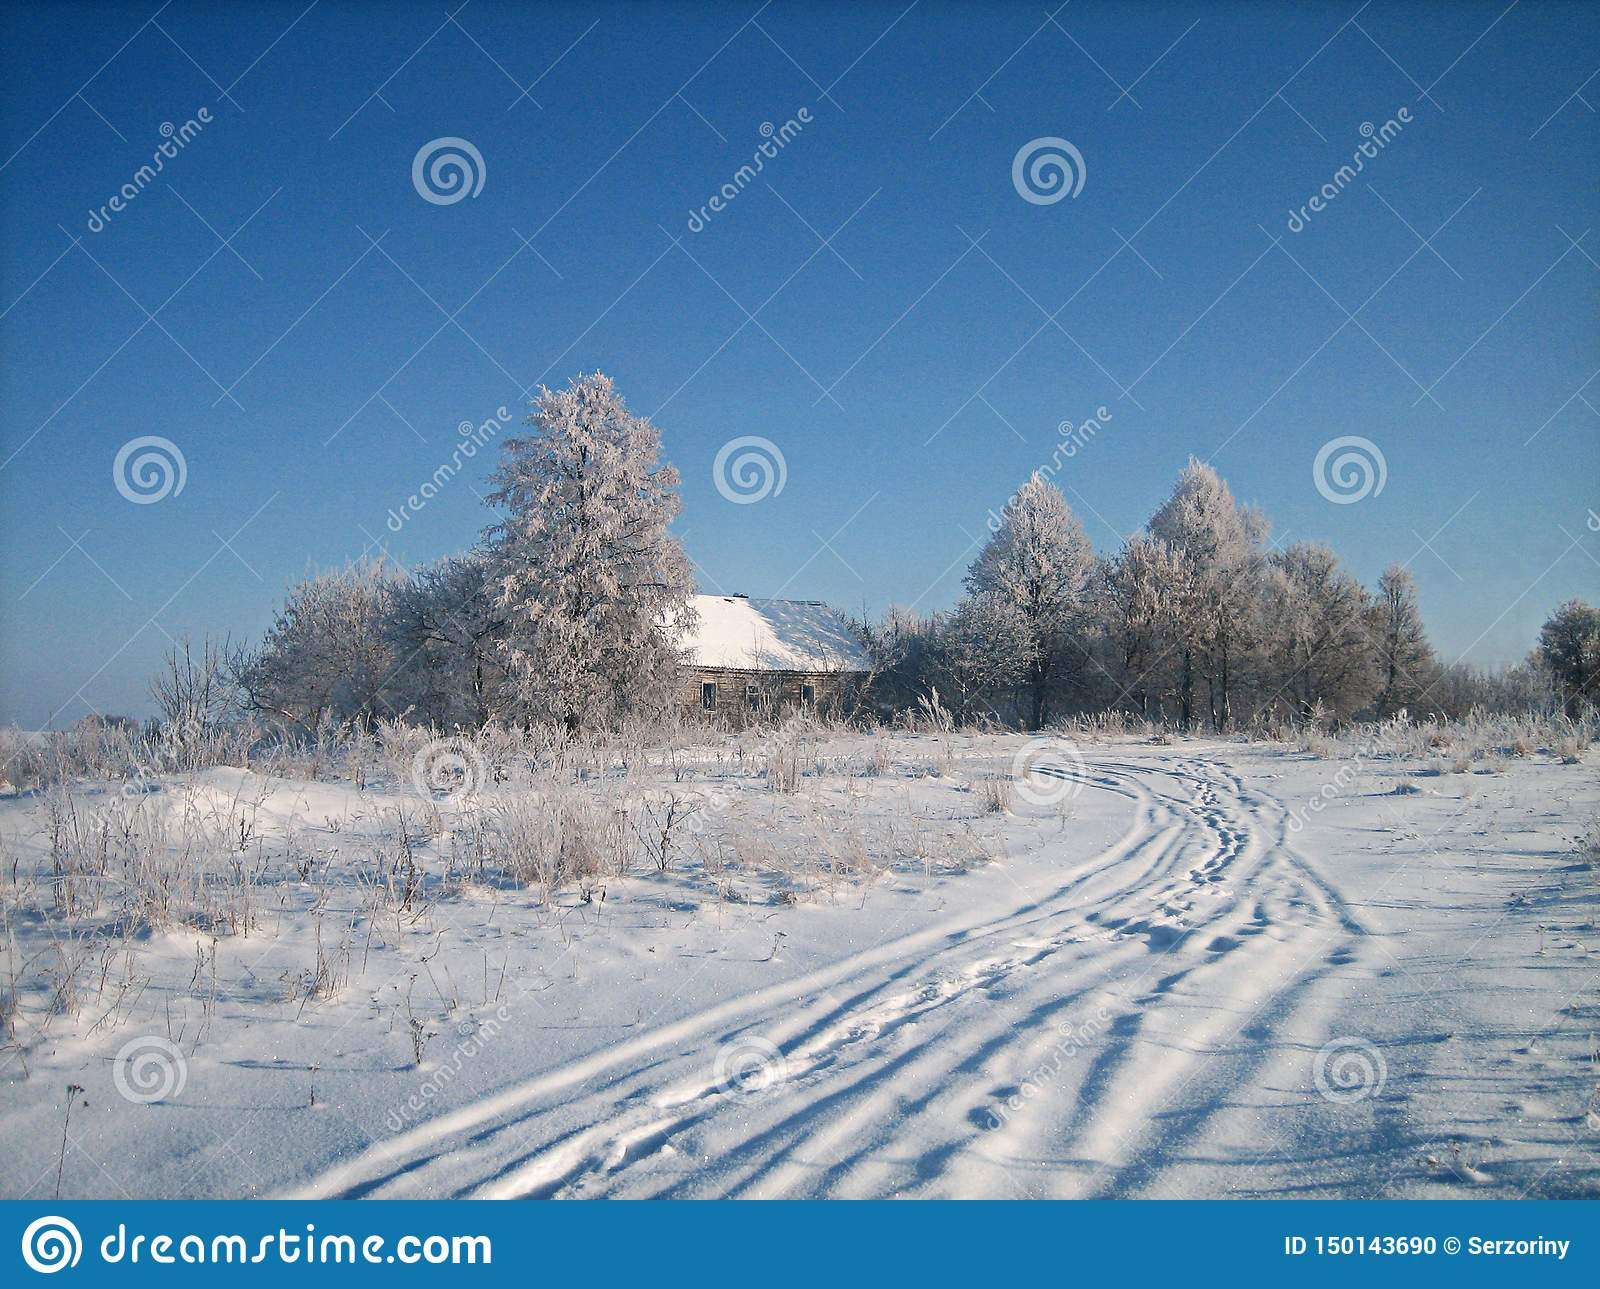 Old abandoned wooden house in a thicket of trees in a snowy field in cold winter day